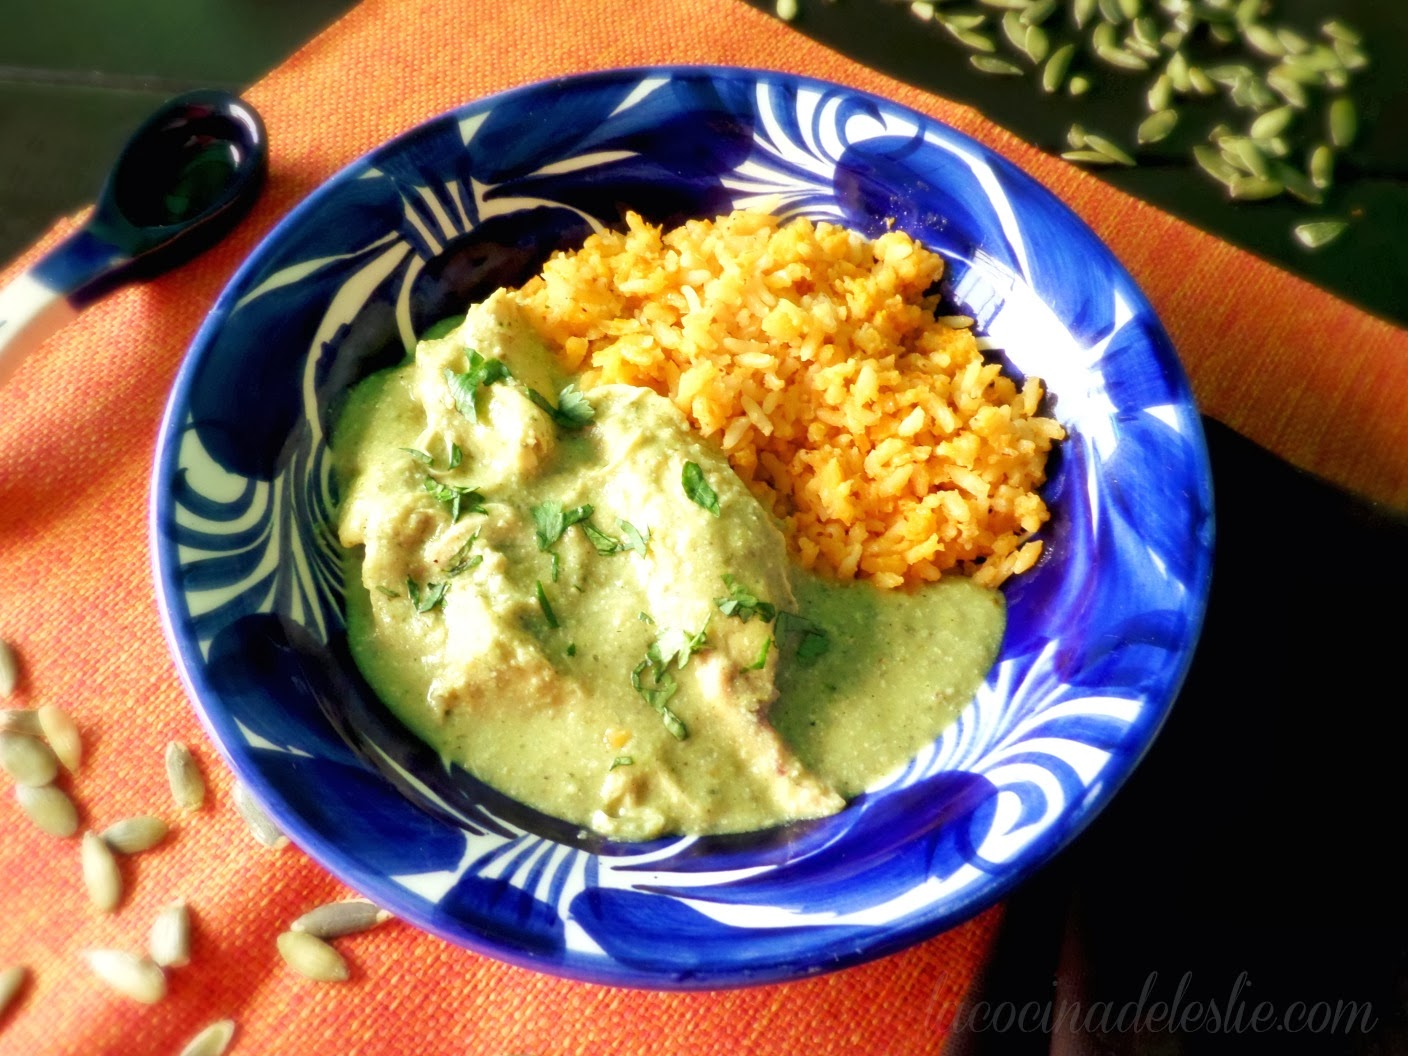 Chicken in Green Pipian Sauce - lacocinadeleslie.com